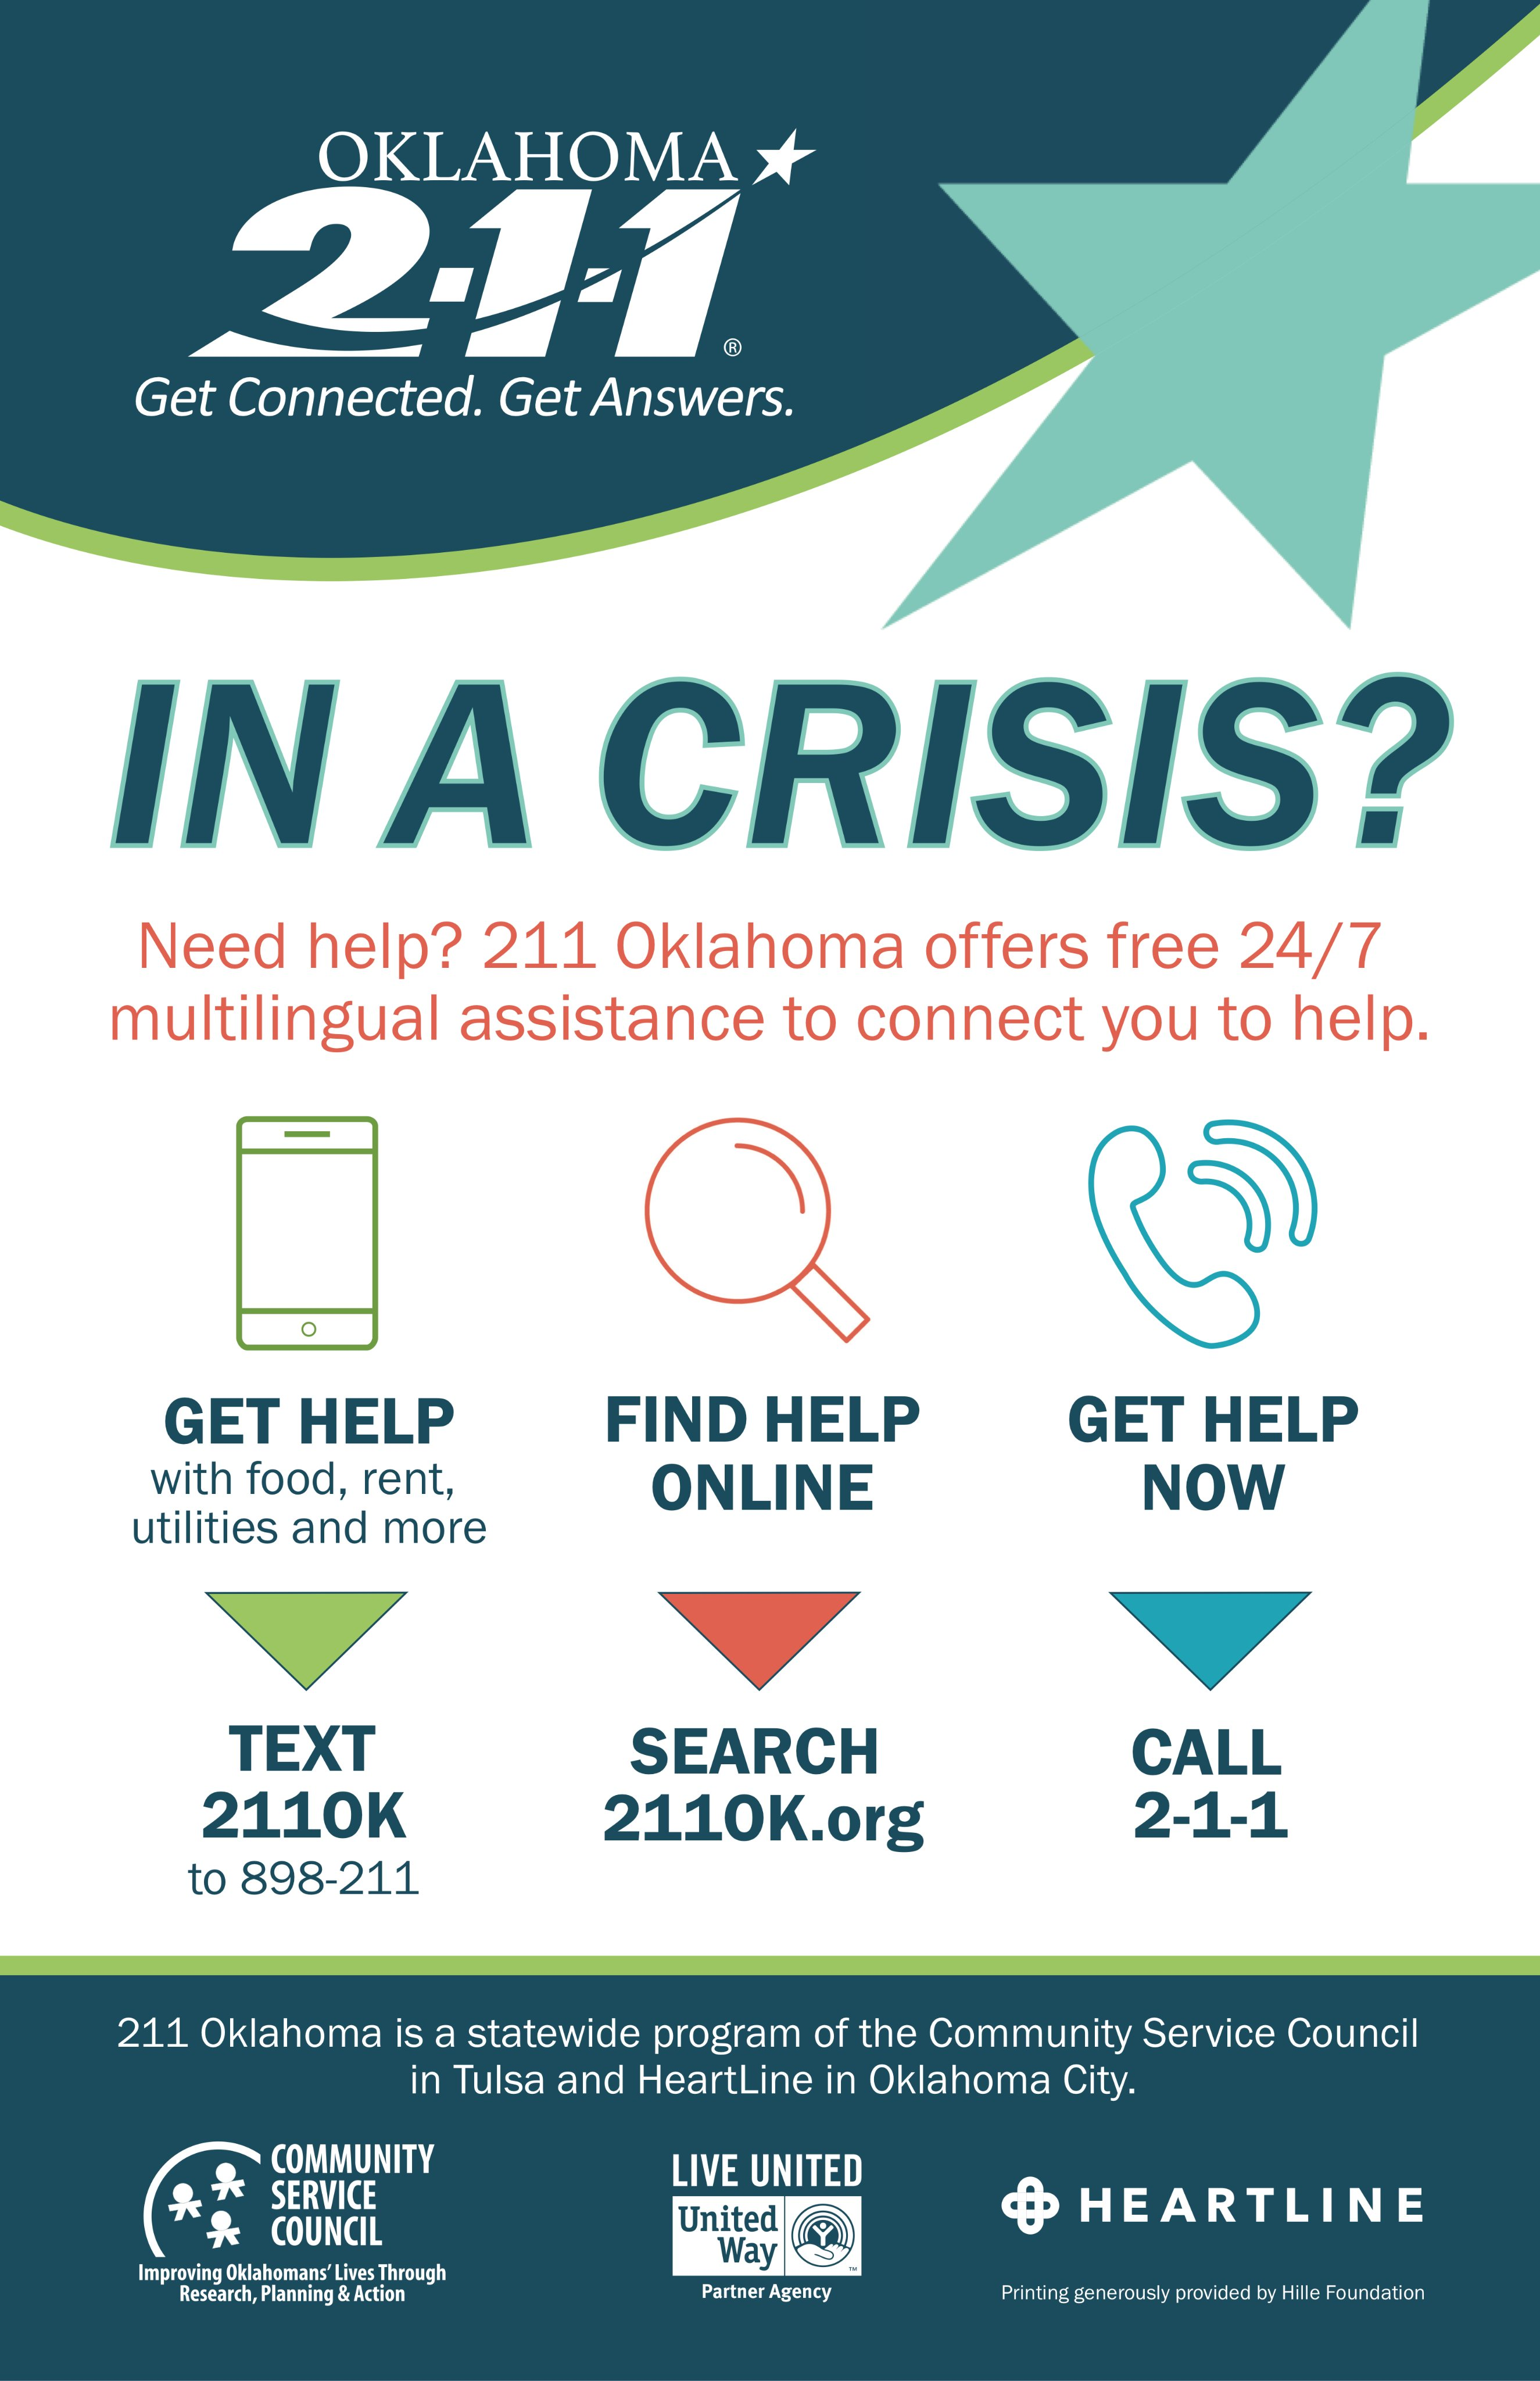 Need help? Oklahoma offers free 24/7 multilingual assistance to connect you to help.